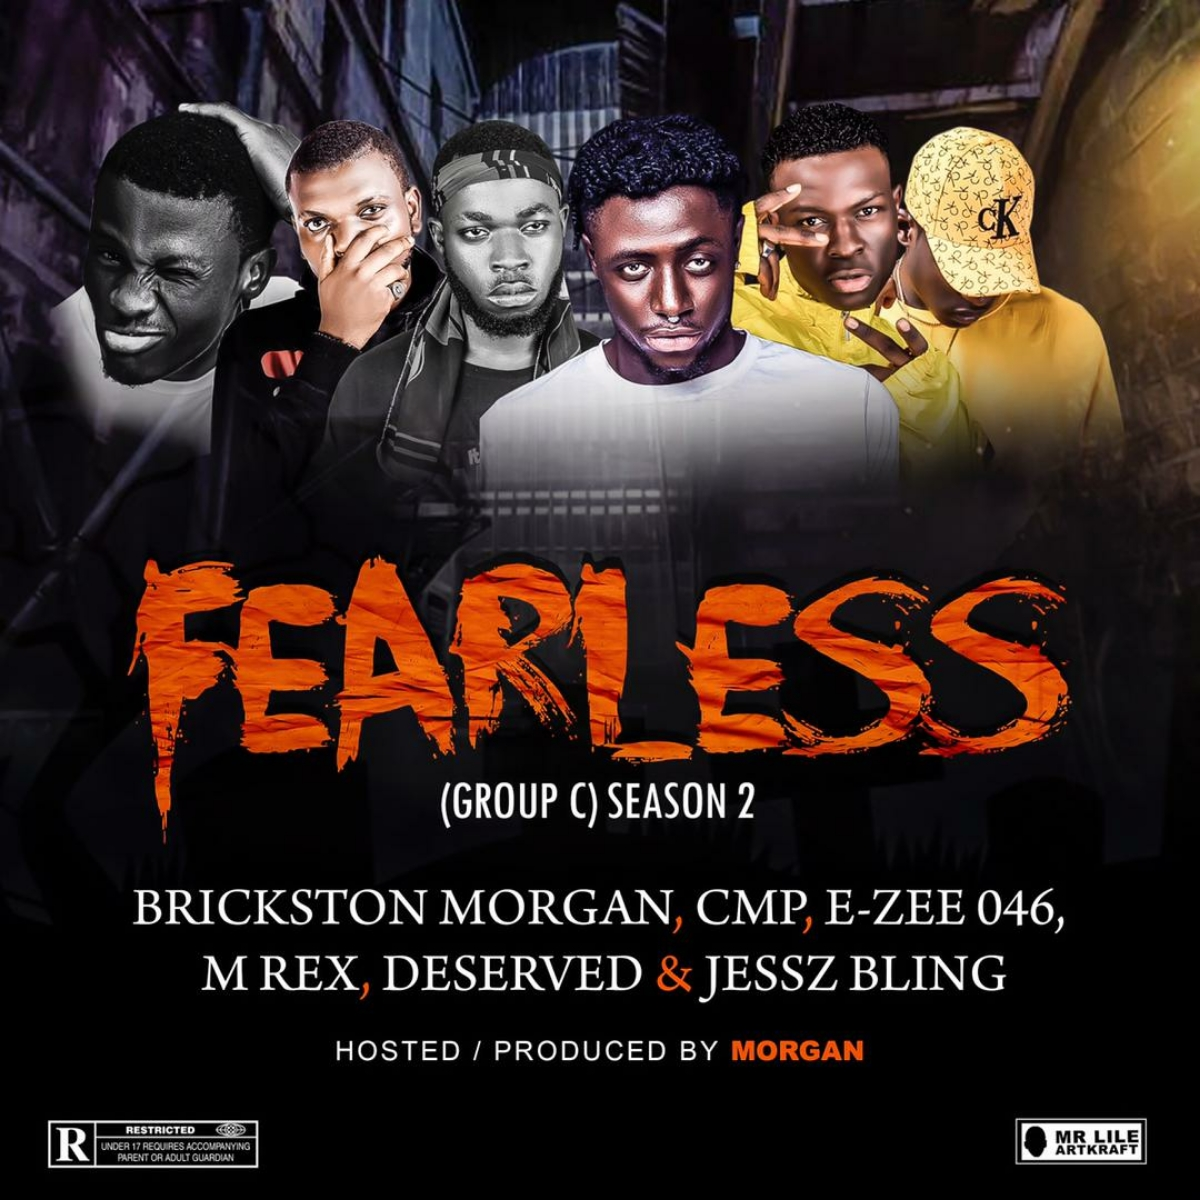 Fearless-2-Group-C-_-FT-_-Morgan-CMP-E-Zee-Deserved-Jesse-Blings-_-Prod-by-Morgan-mp3-image